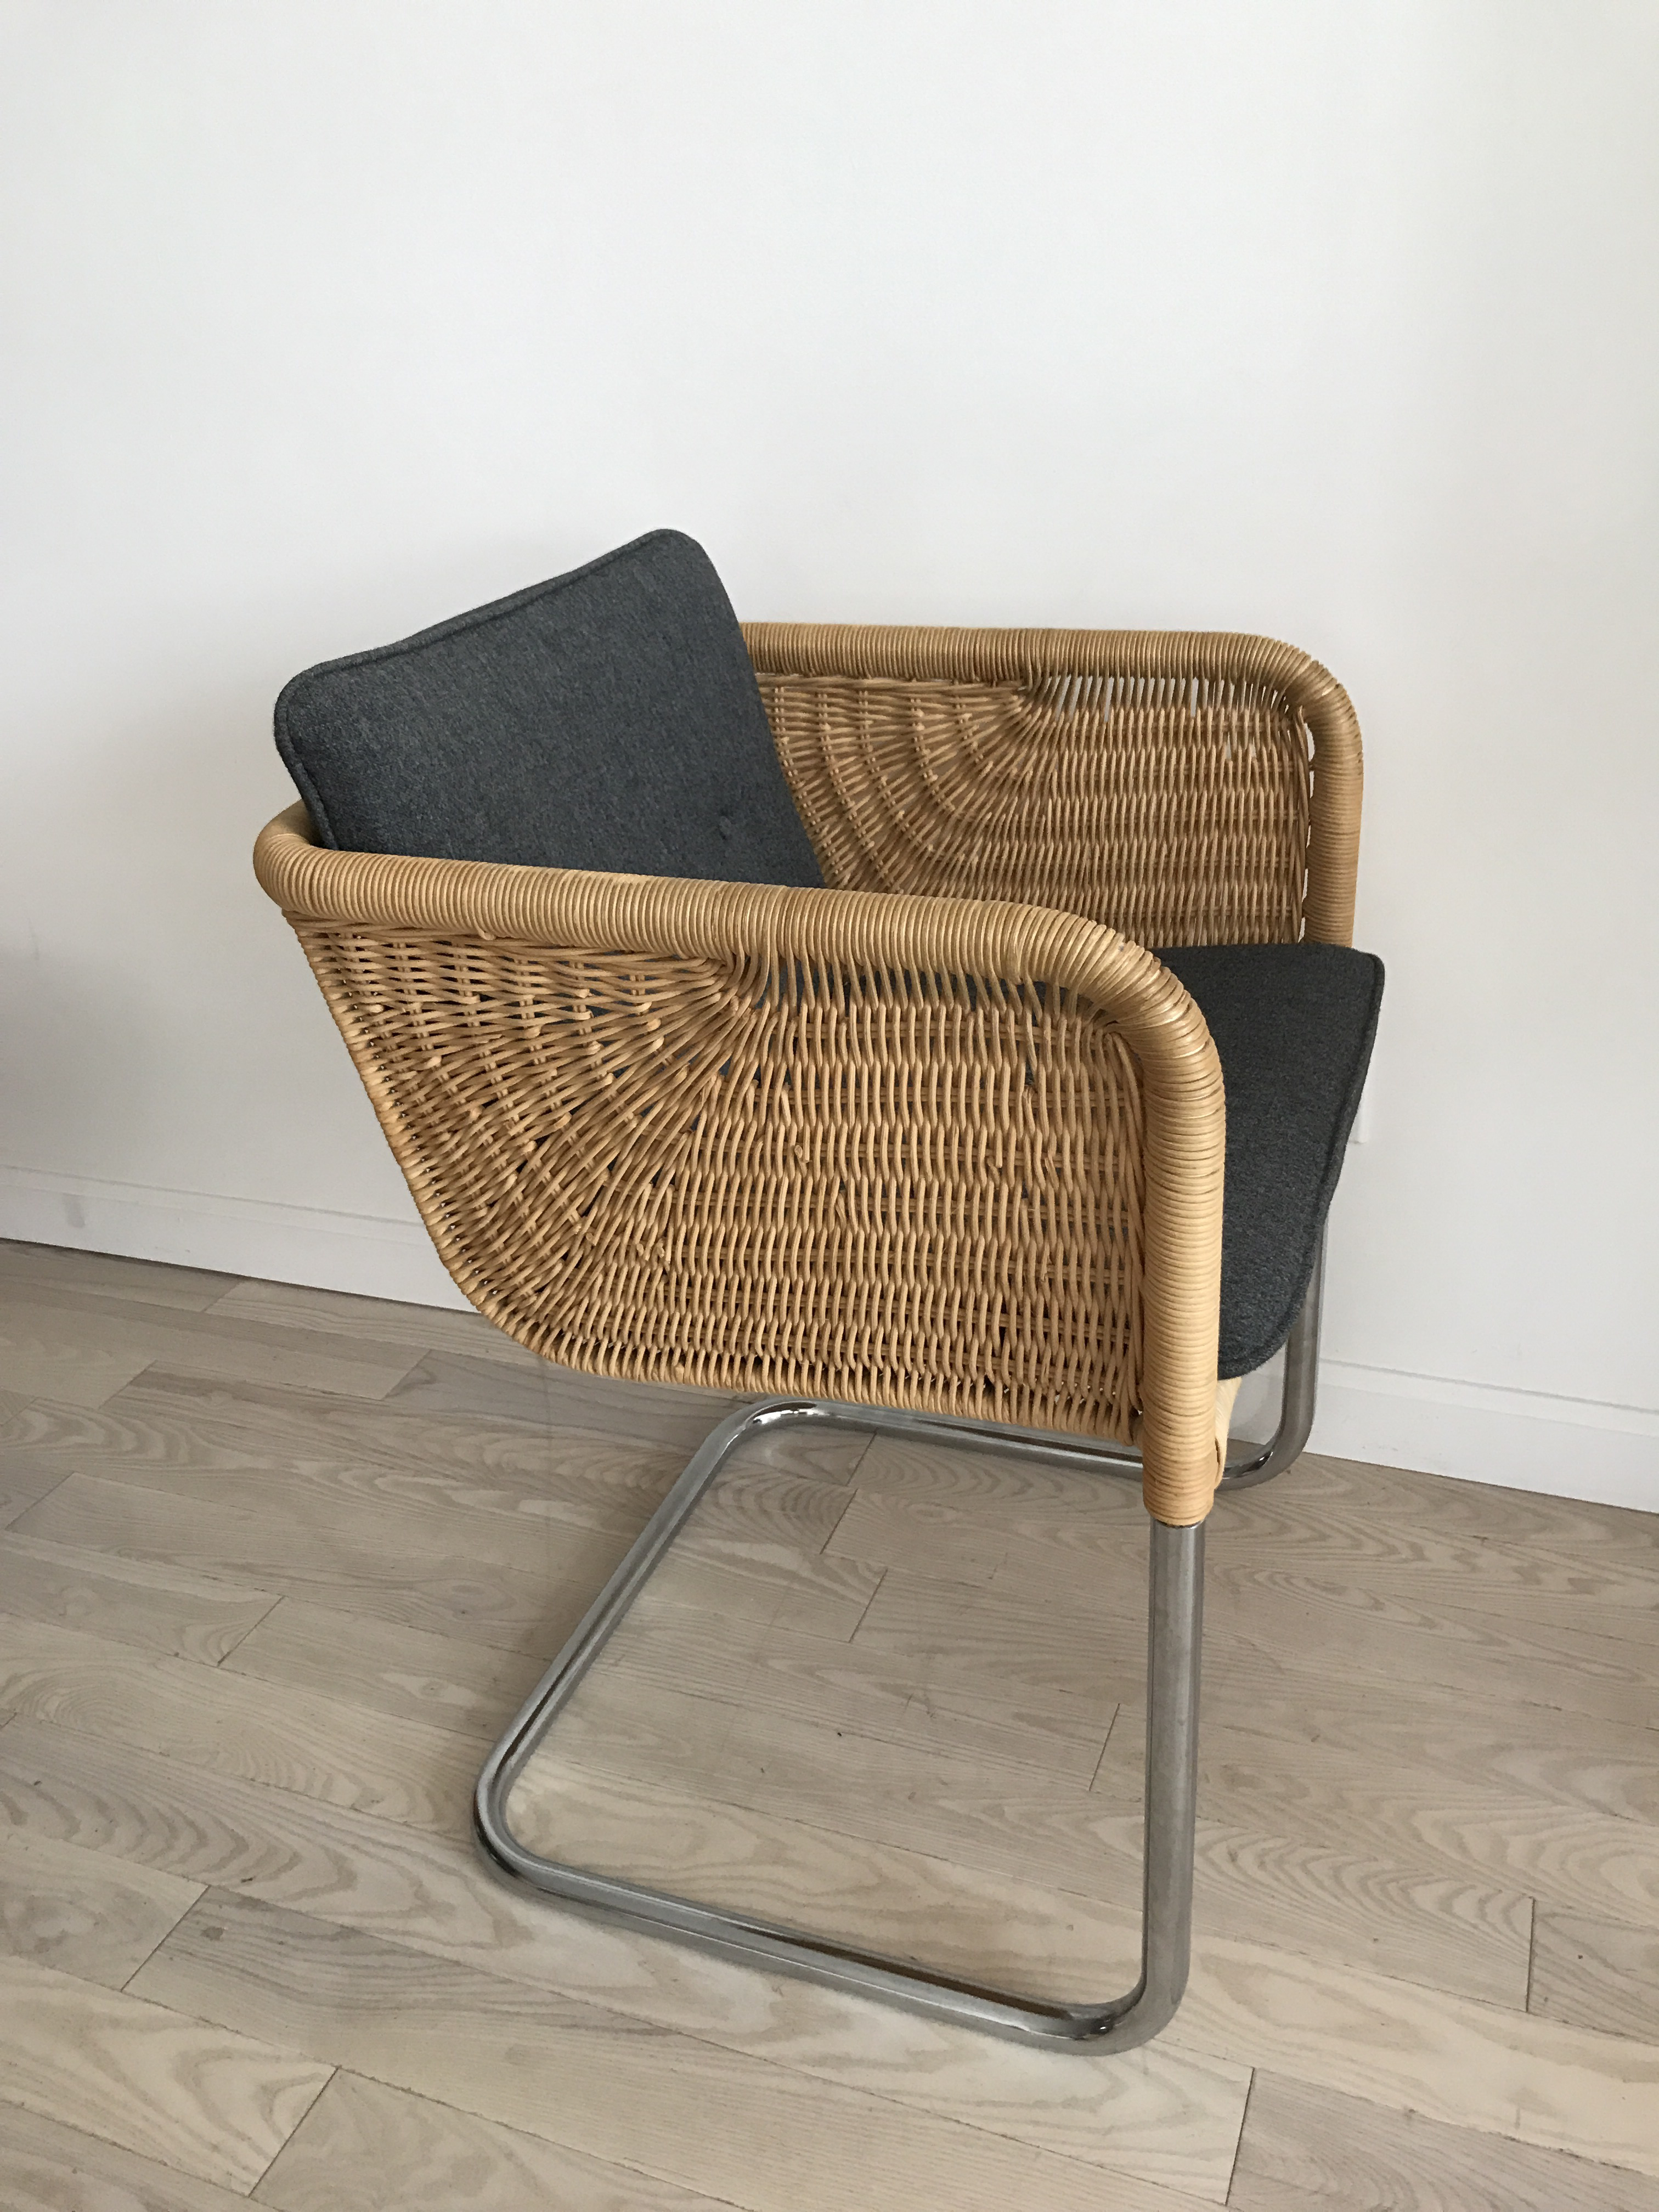 Harvey Probber Wicker Cantilever Chair With Cushions   Image 4 Of 11